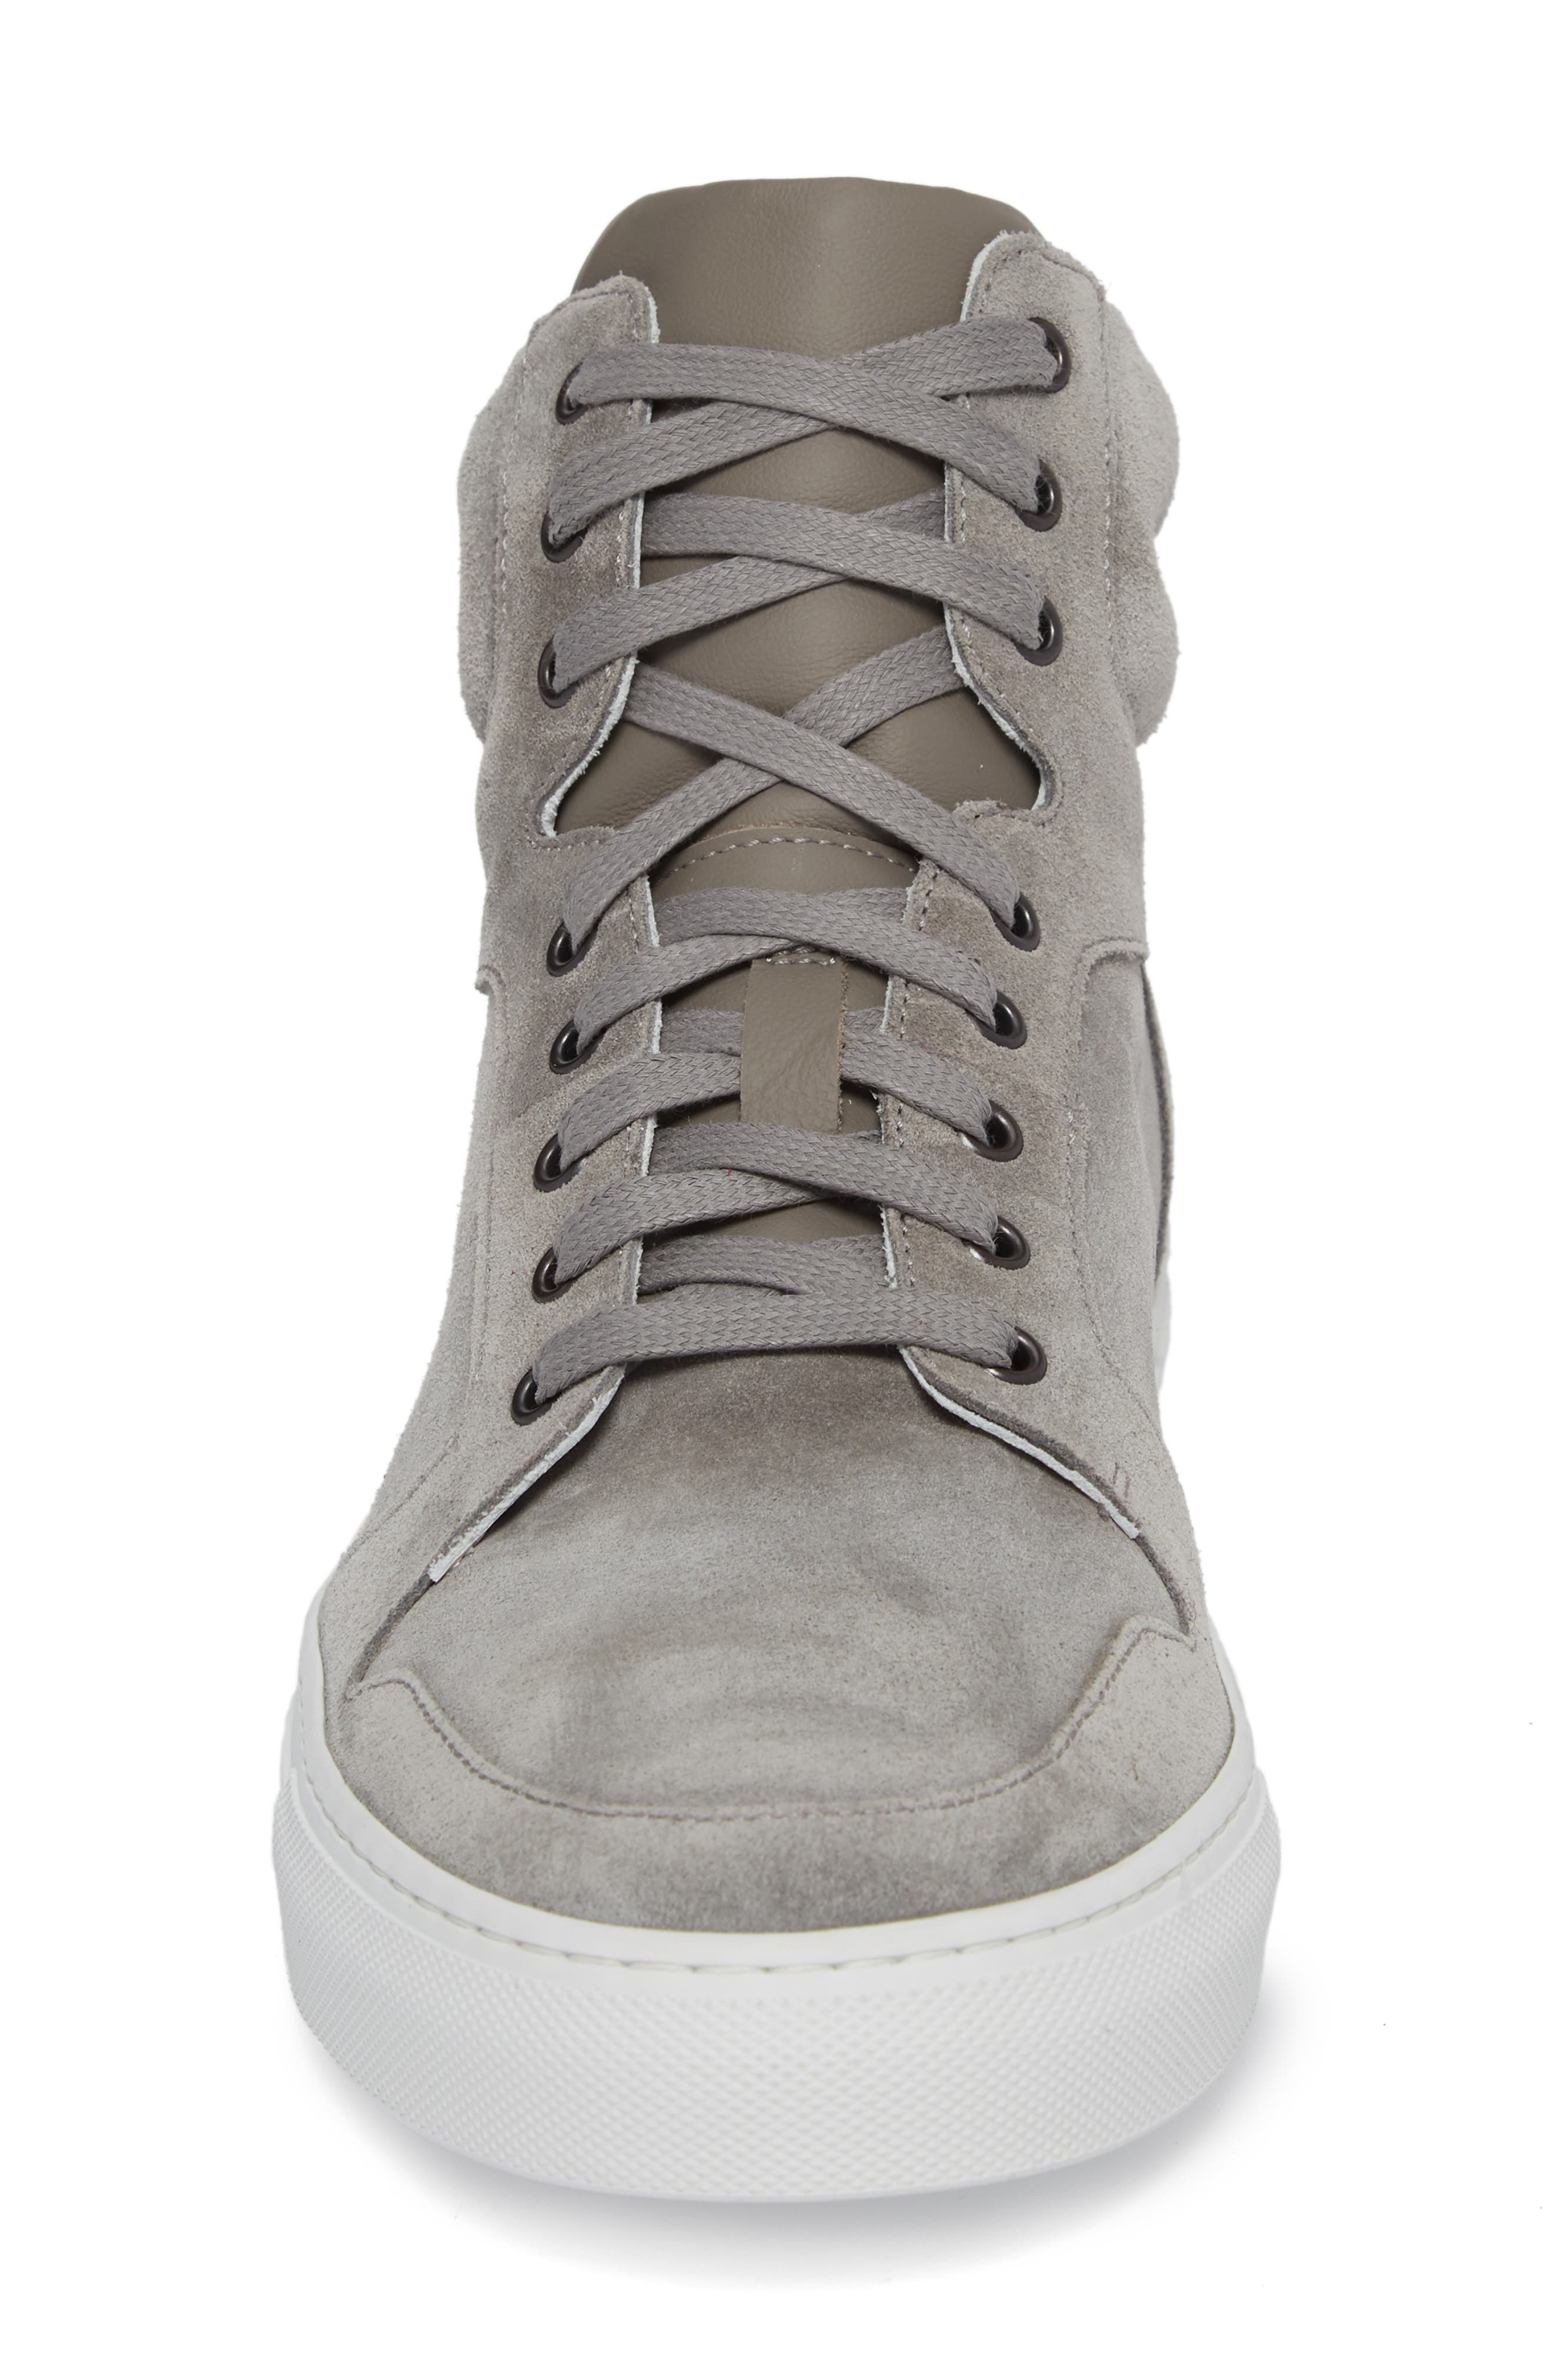 Belmont High Top Sneaker,                             Alternate thumbnail 4, color,                             Grey Suede